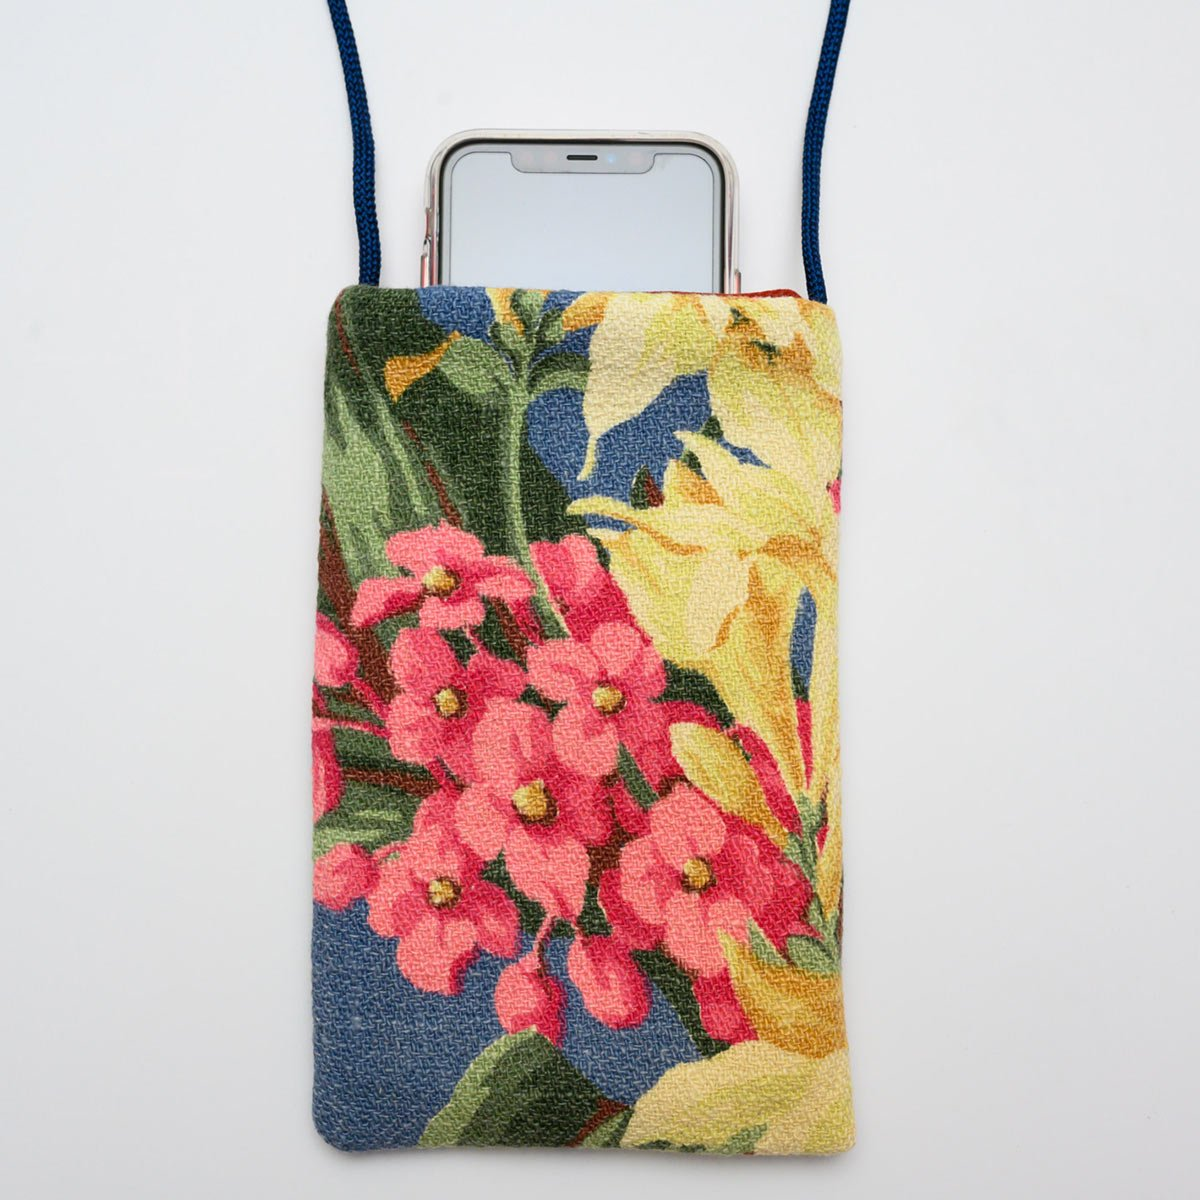 Cell Phone floral bouquet on blue